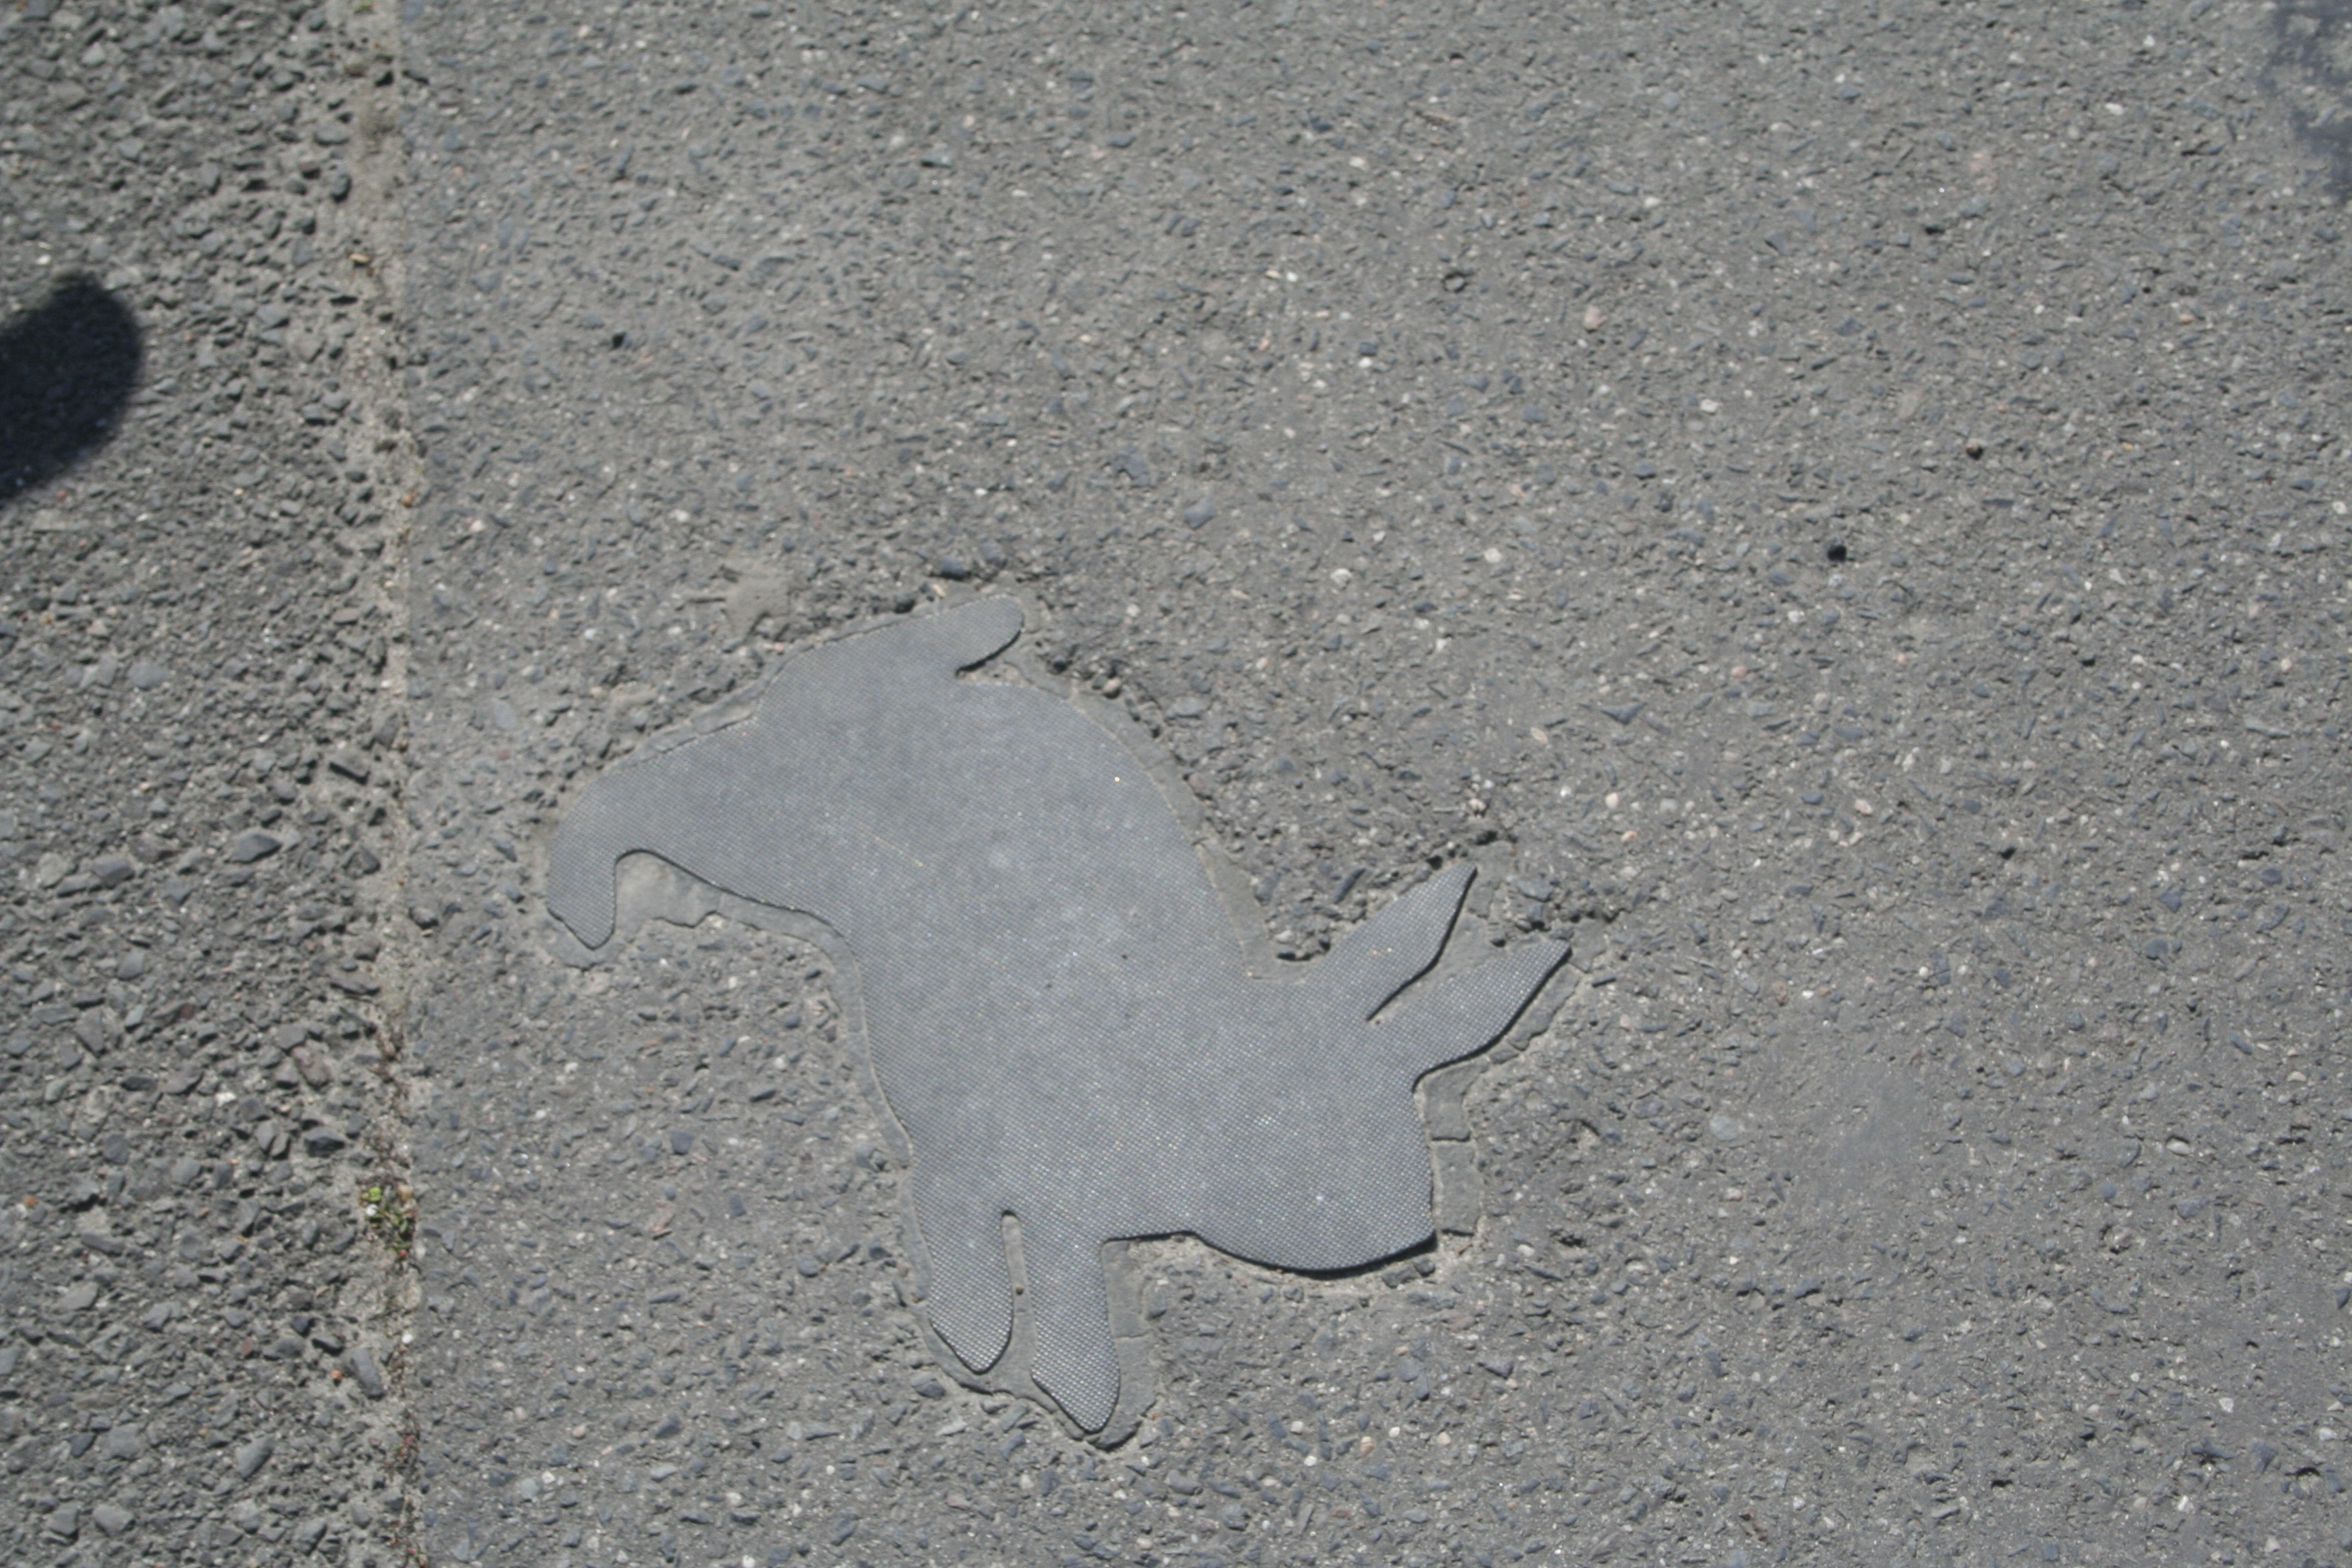 A photograph of a paved walkway with the shape of a rabbit set in the middle, smoother than the surrounding ground.